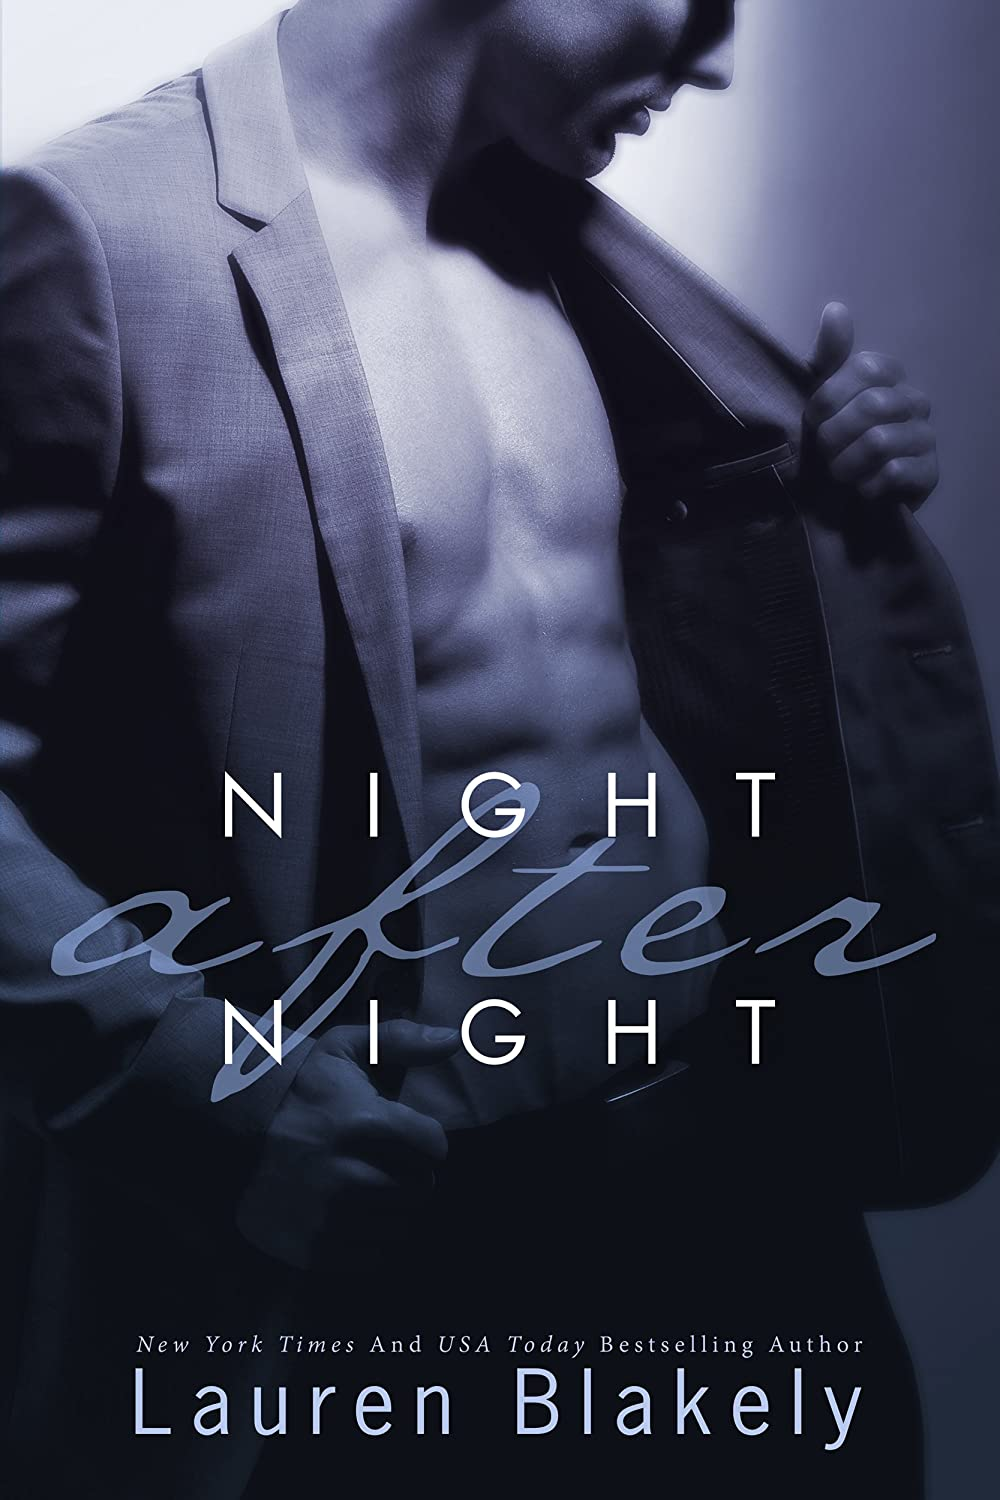 The cover of Night after Night